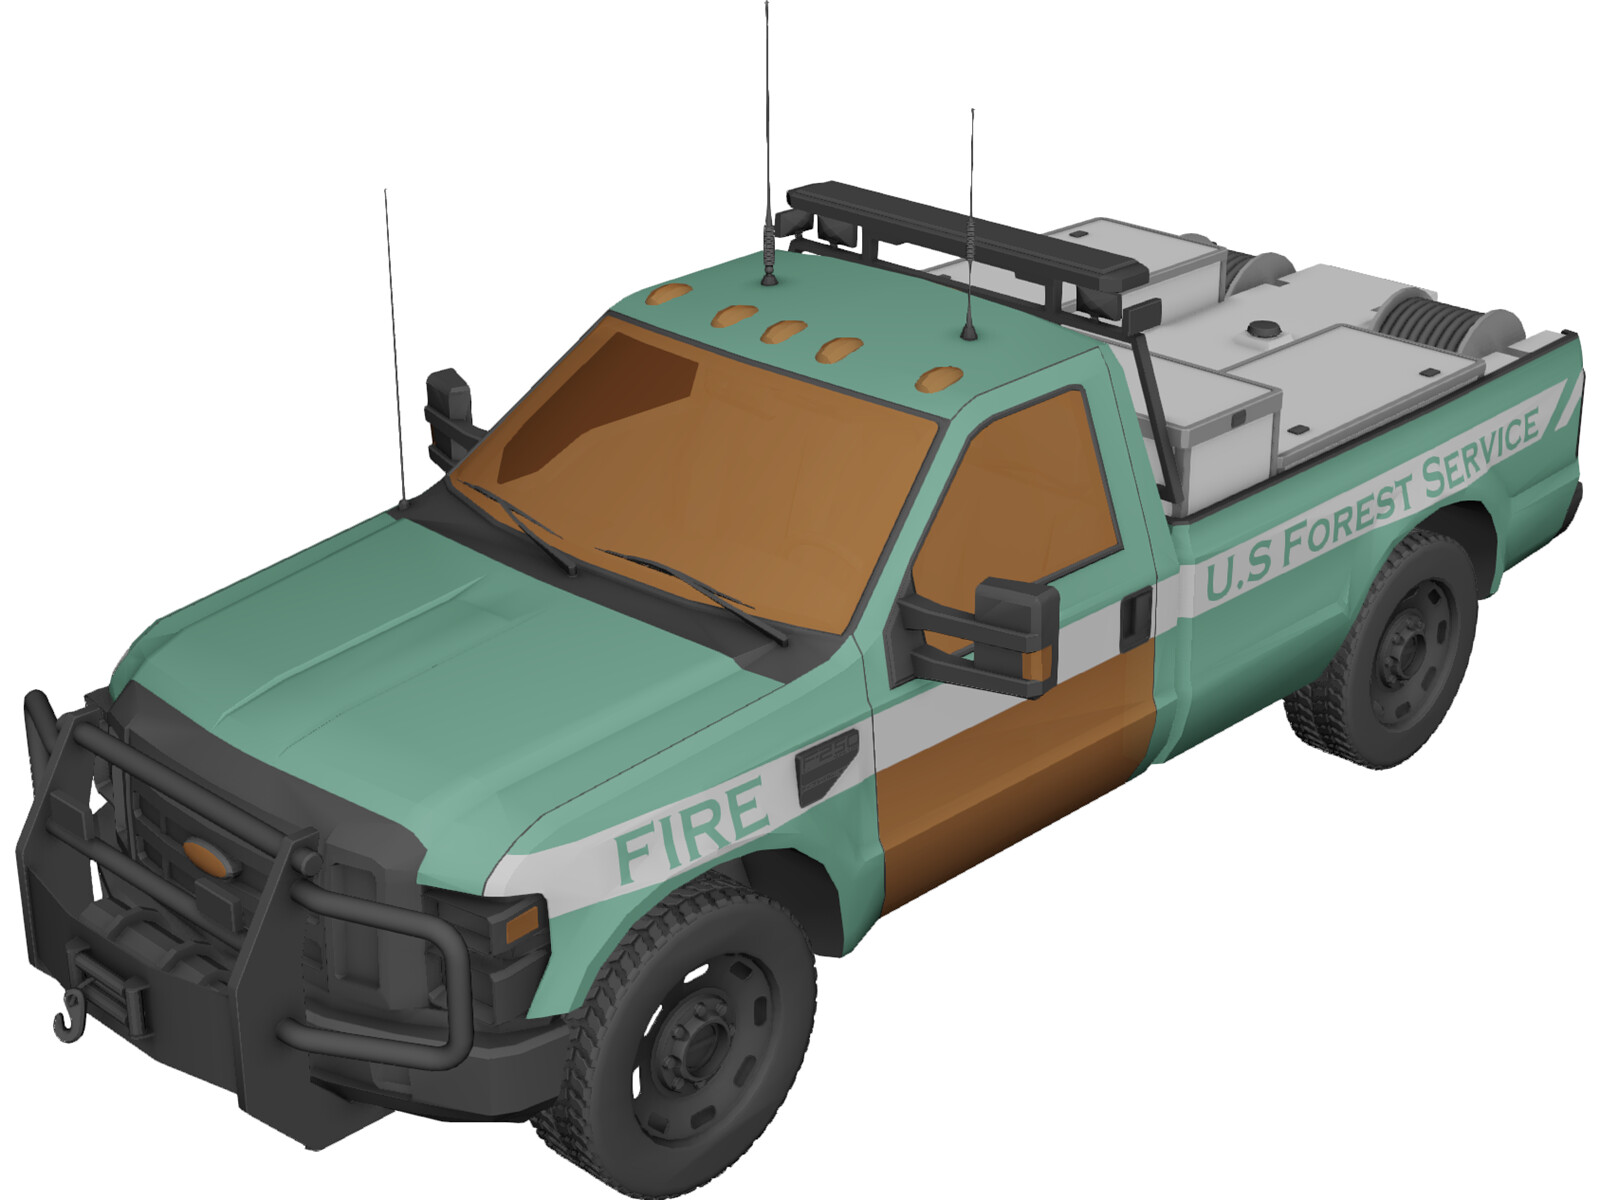 Ford F-150 US Forest Service